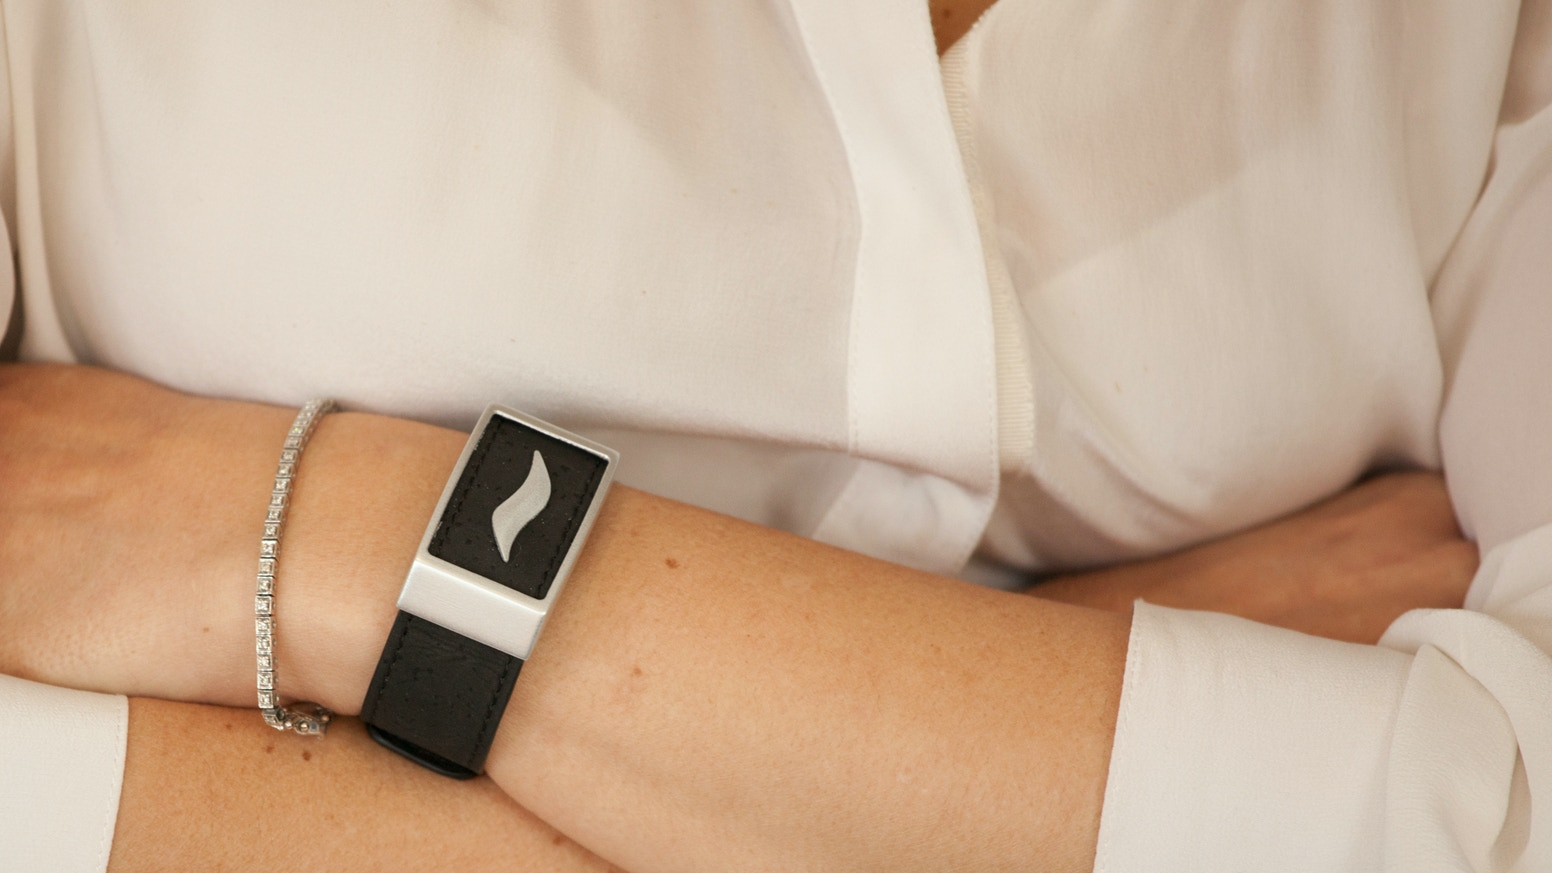 The WellBe is an elegant, light-weight bracelet and mobile app designed to indicate your stress triggers and provide immediate solution